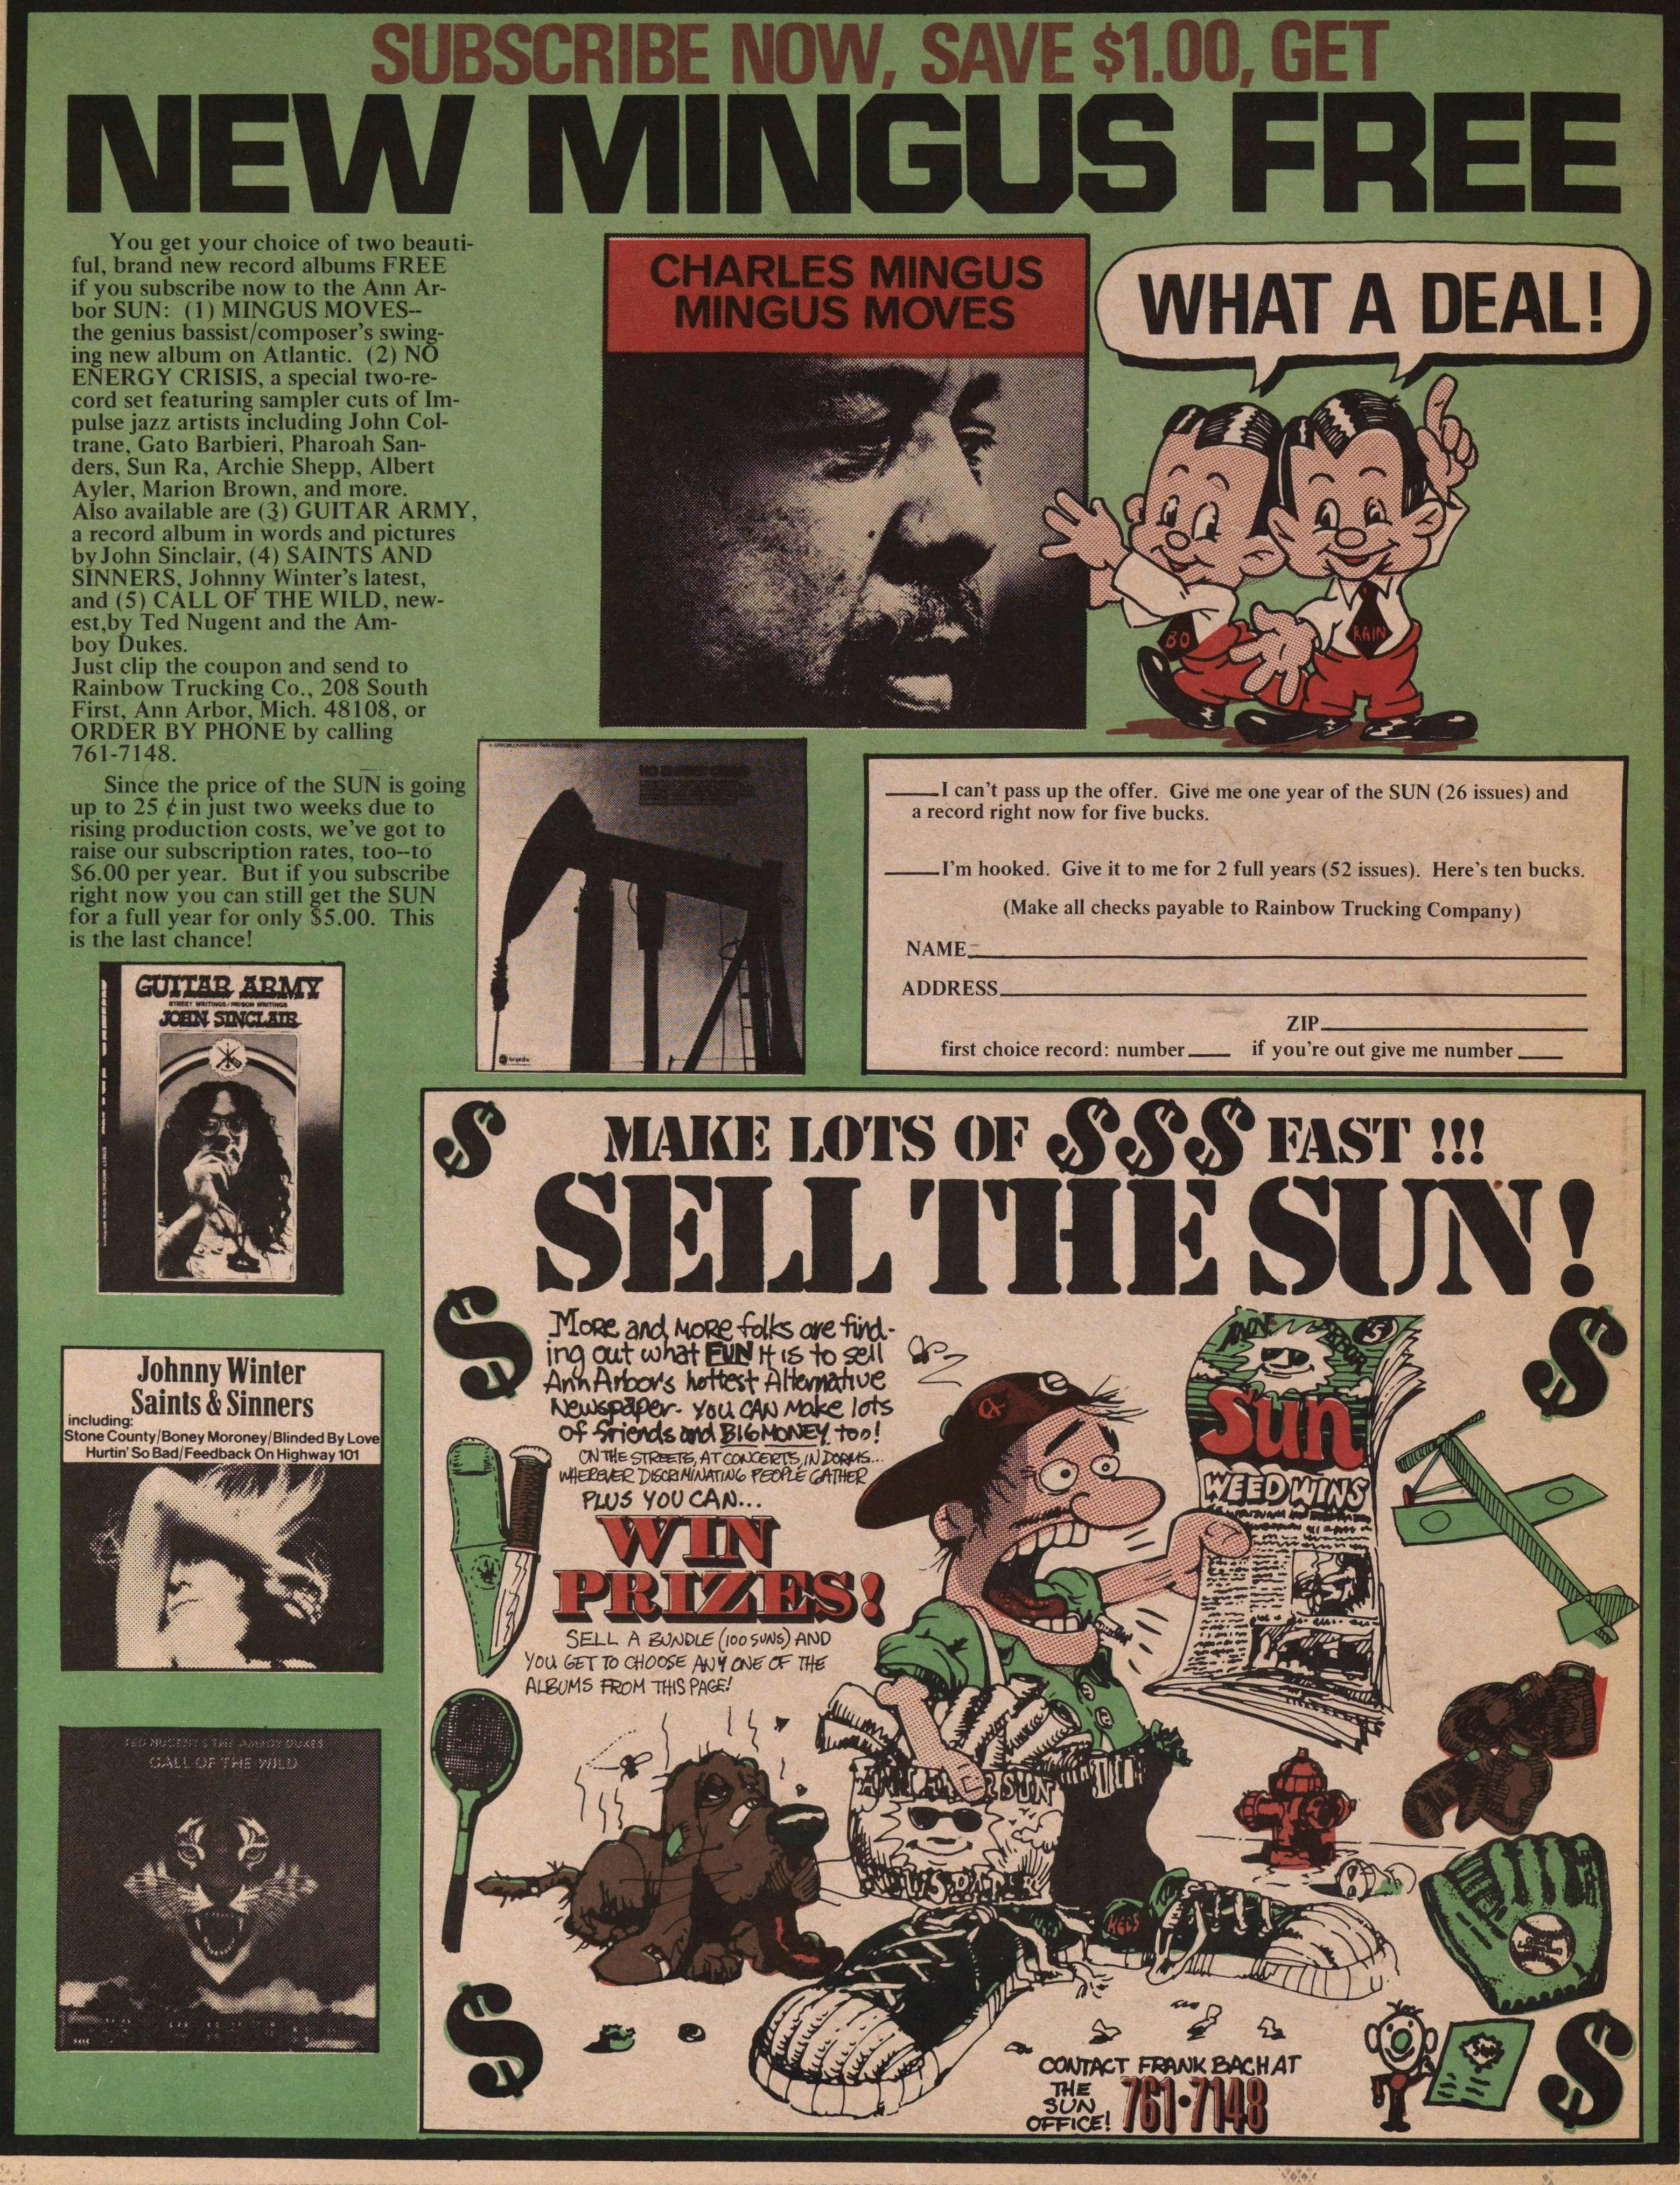 Sell The Sun! image